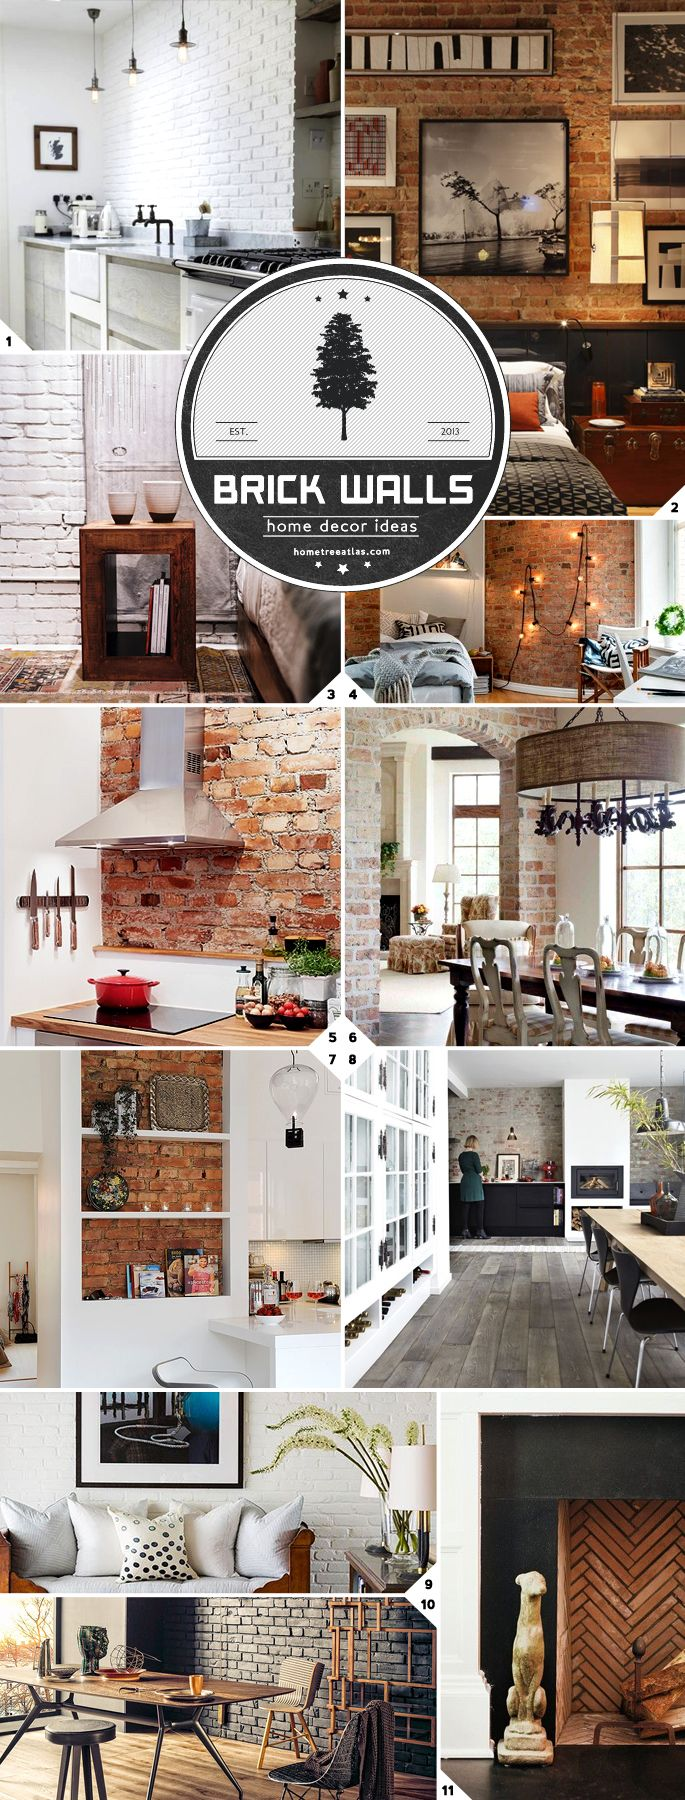 Design ideas and tips for adding rustic charm to a room by including an exposed brick wall